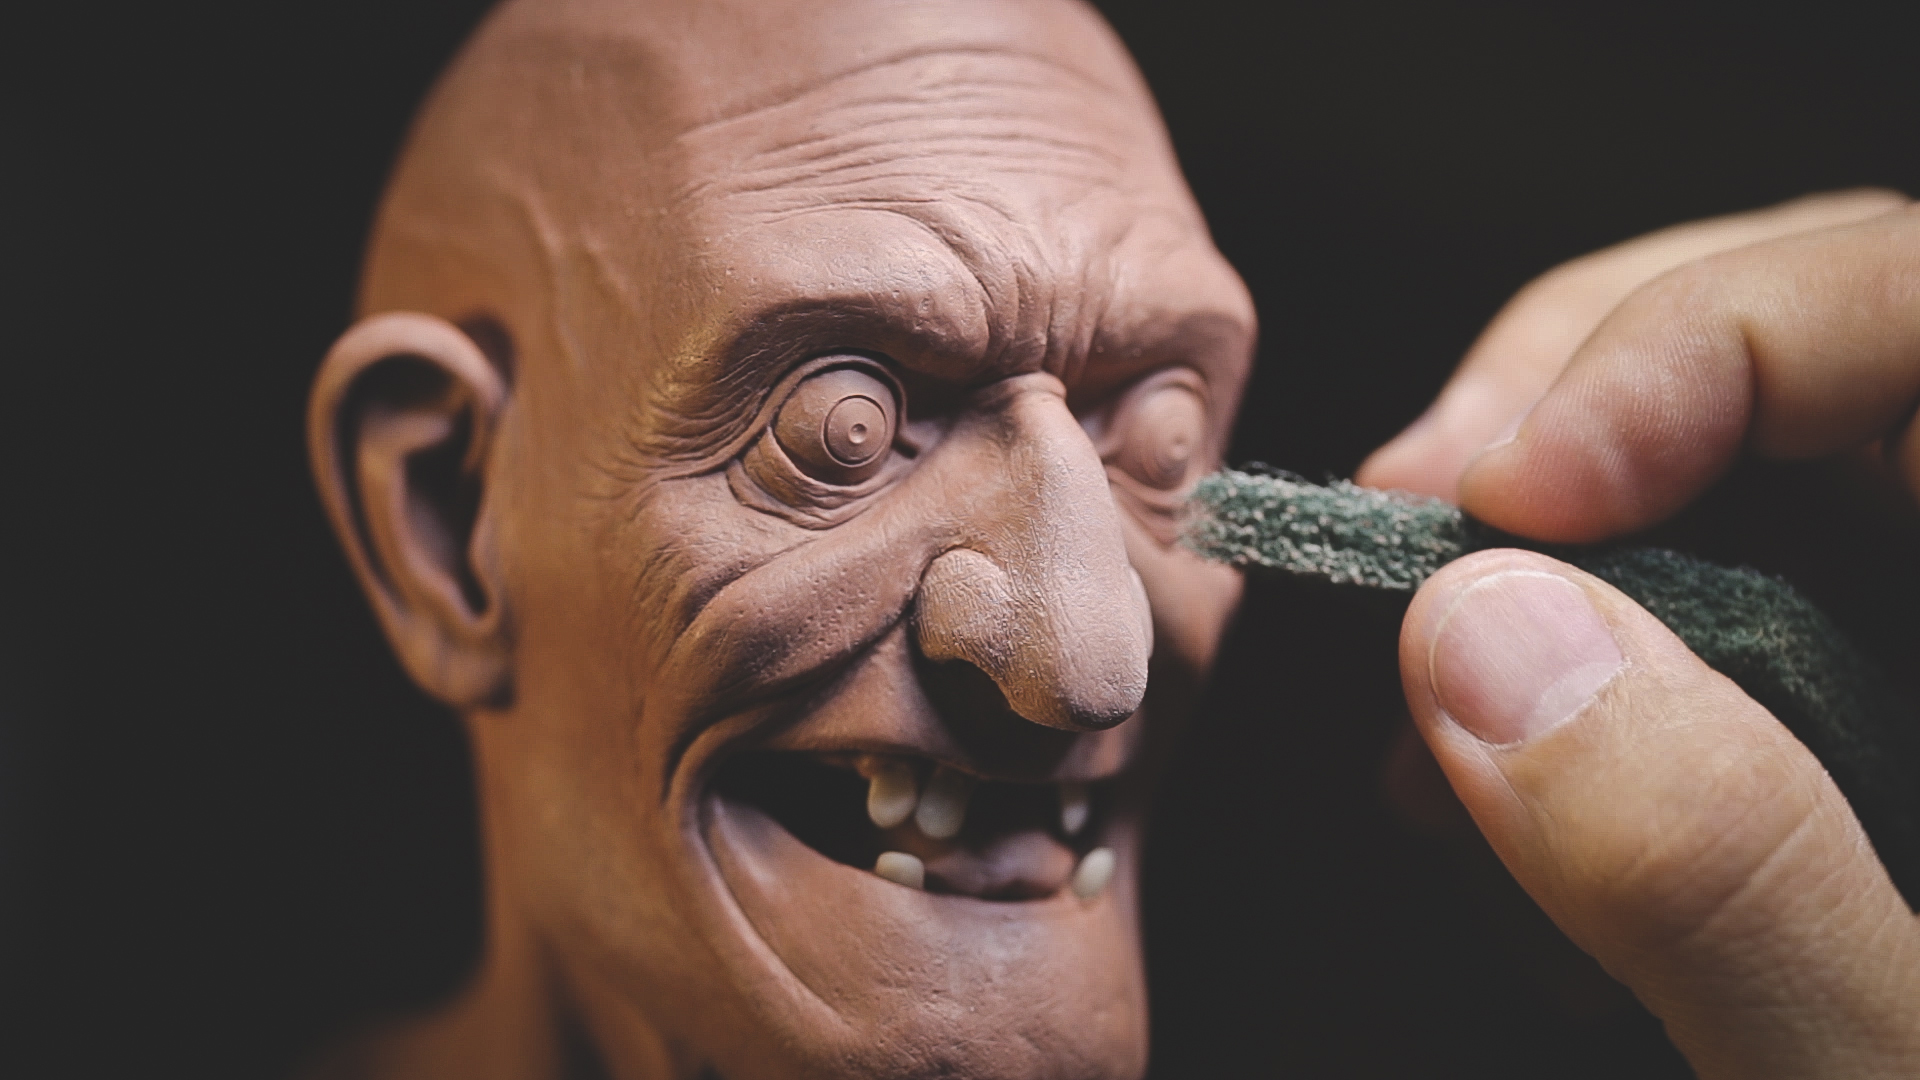 Work in progress of Mad Dr. from Sculpting a Stylized Character Tutorial by sculptor Chris Vierra of Sculpture_Geek.